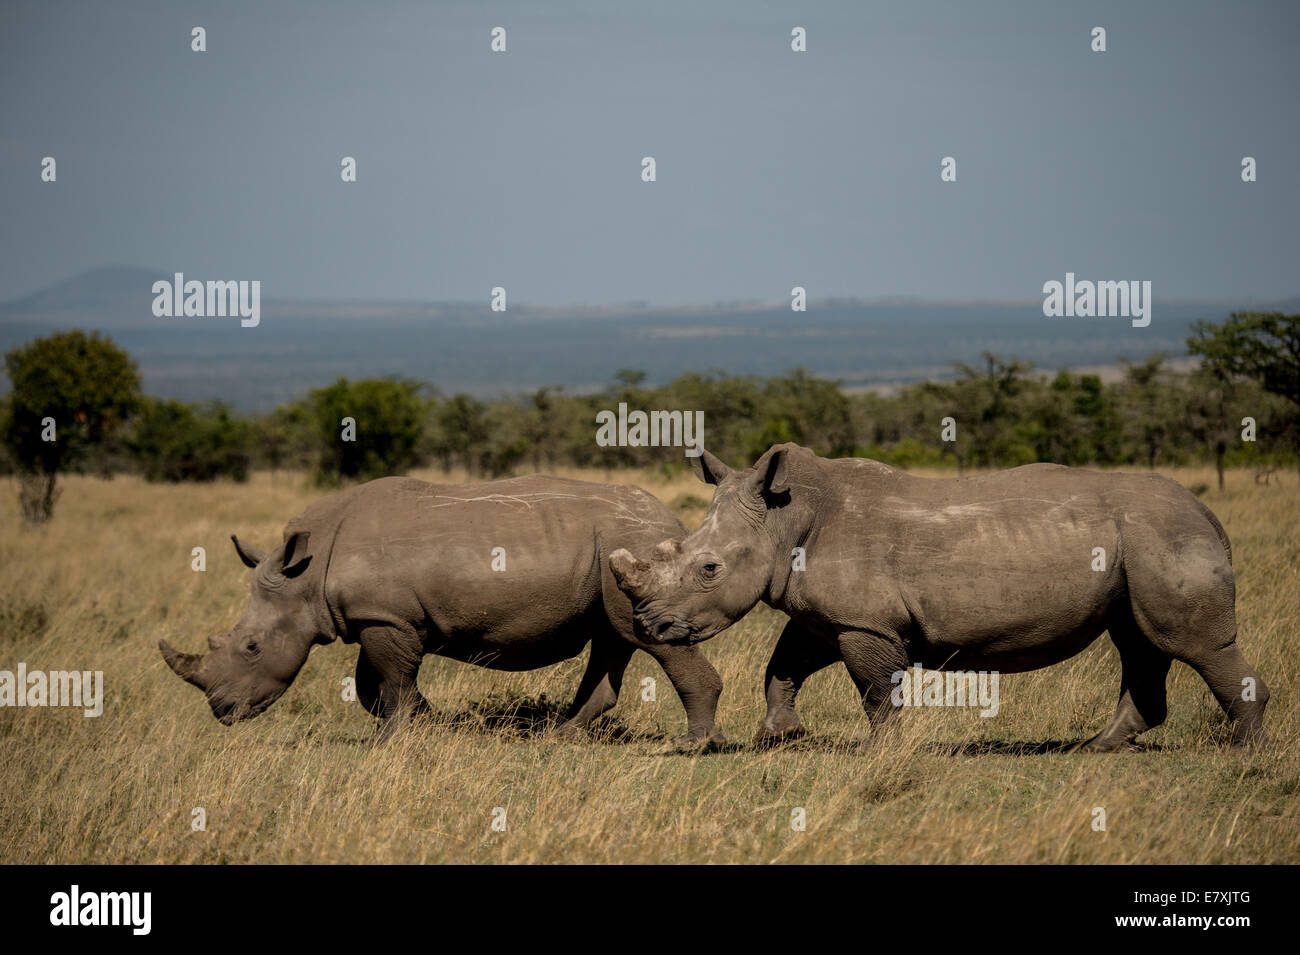 Fatu, (with sawed off horn) socializes with southern white rhinos at Ol Pejeta Nature Conservancy in Kenya, She - Stock Image